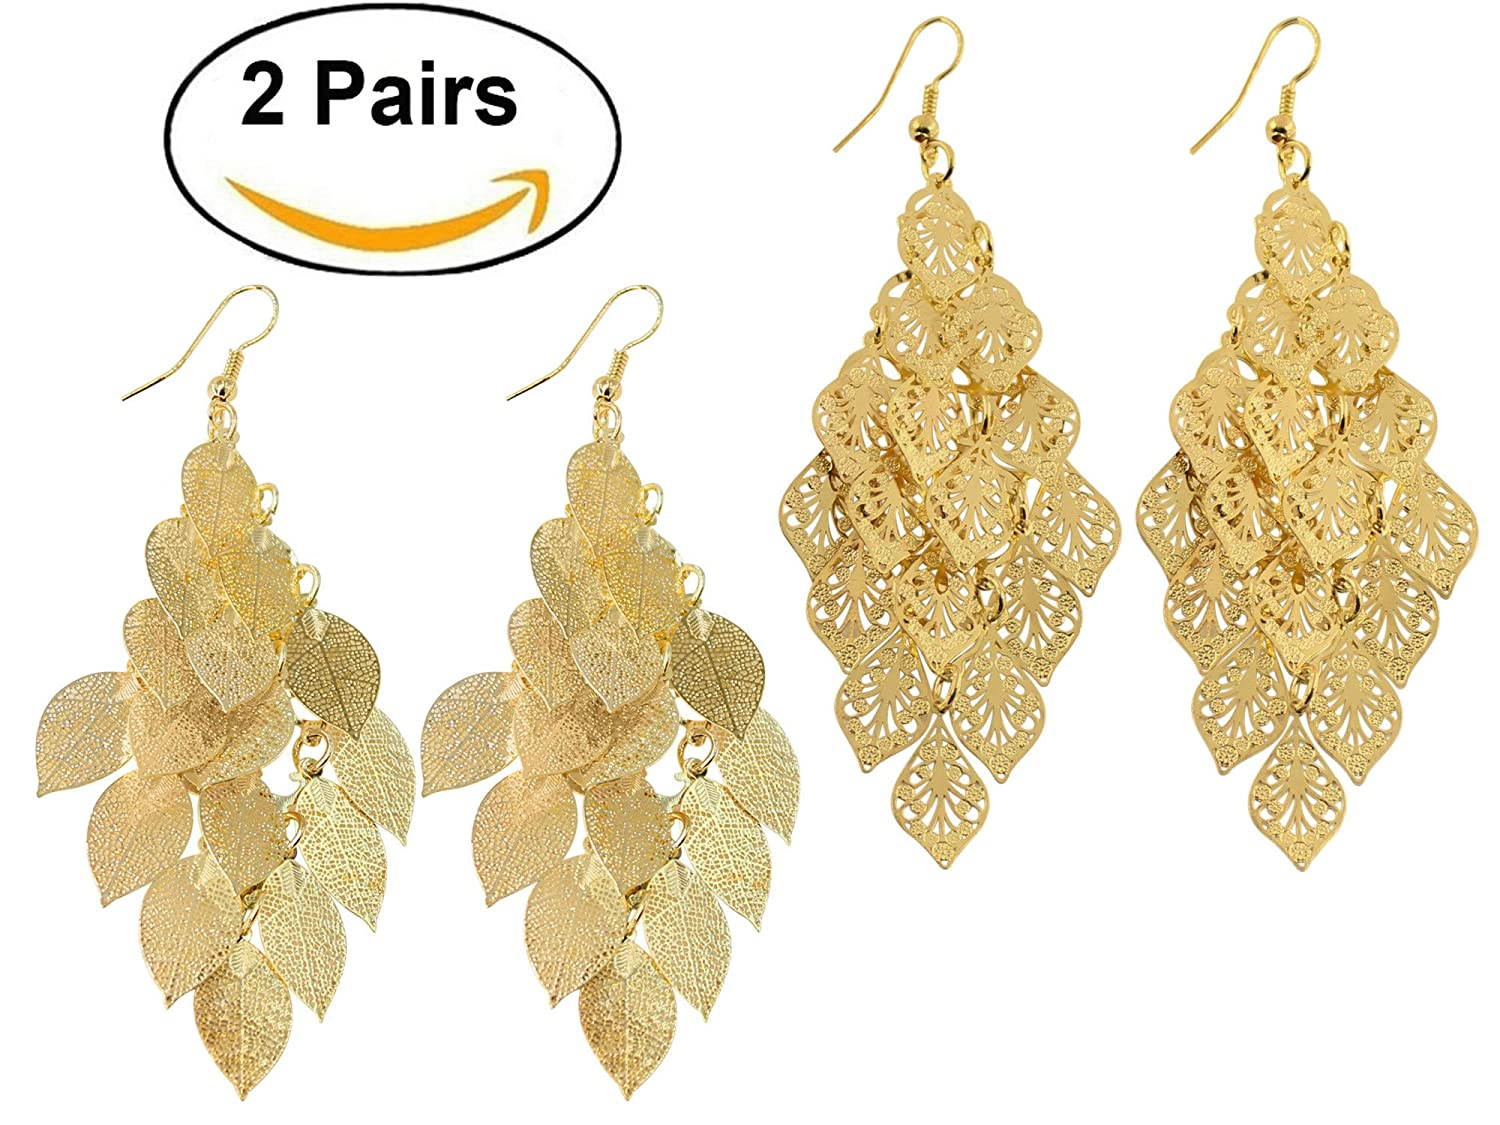 2 Pairs Fashion Dangling Filig...